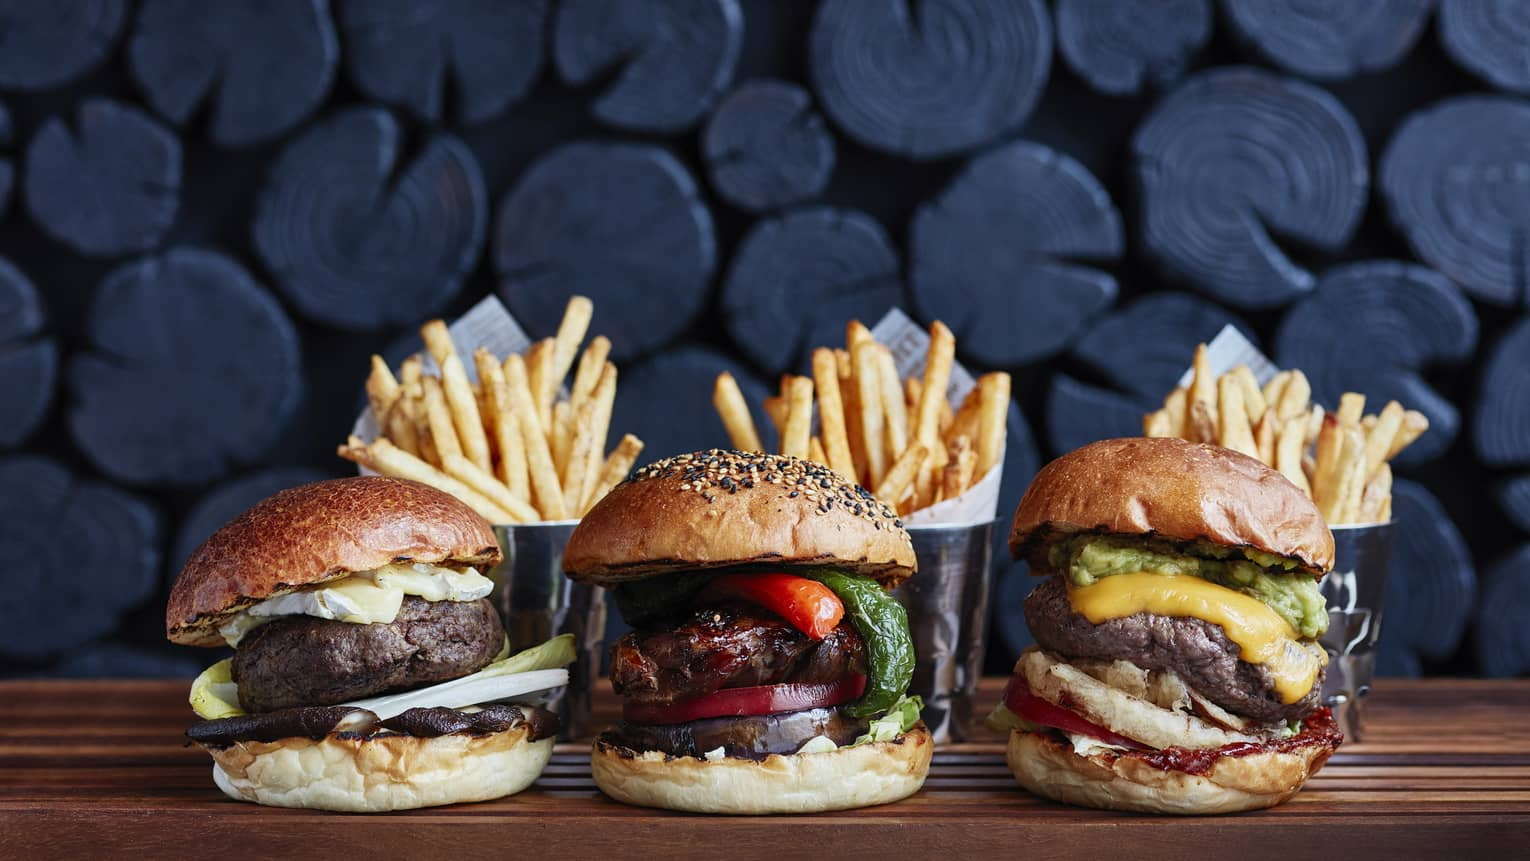 Three hamburgers with Brie, black truffles, duck confit and french fries on the side